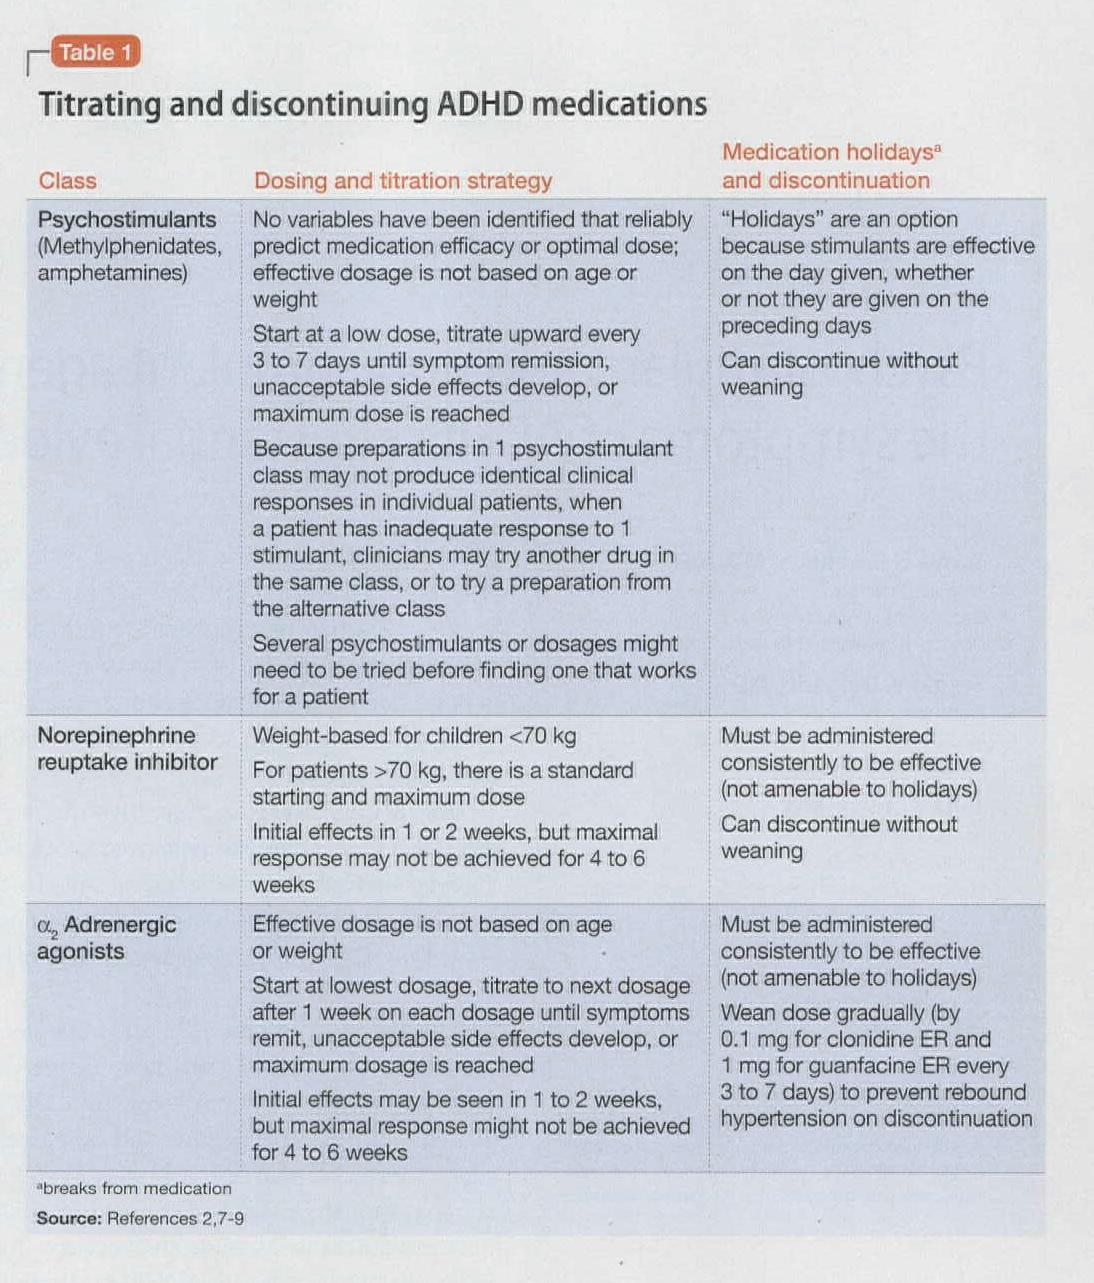 Academic OneFile - Document - Expanding medication options